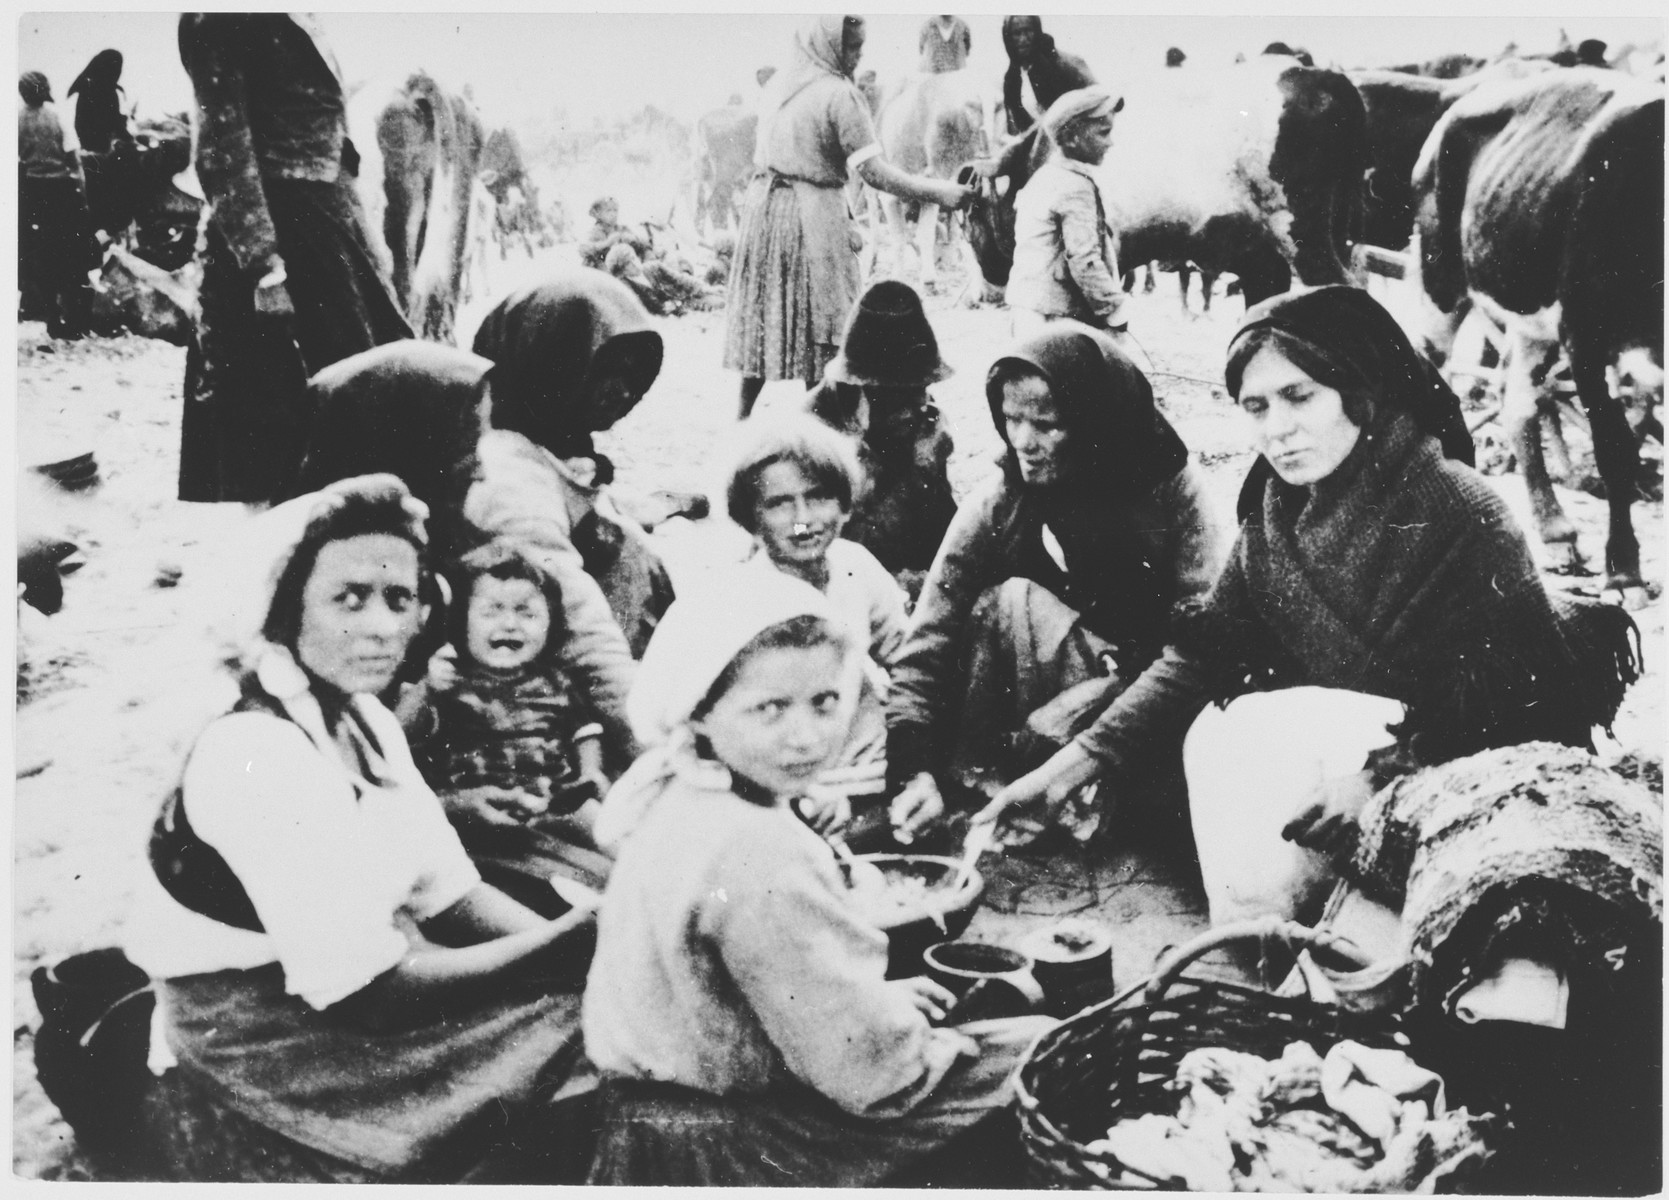 [Probably Serbian women and children from the Kozara region who have been rounded-up for deportation, eating a meal outside at a transit camp.]